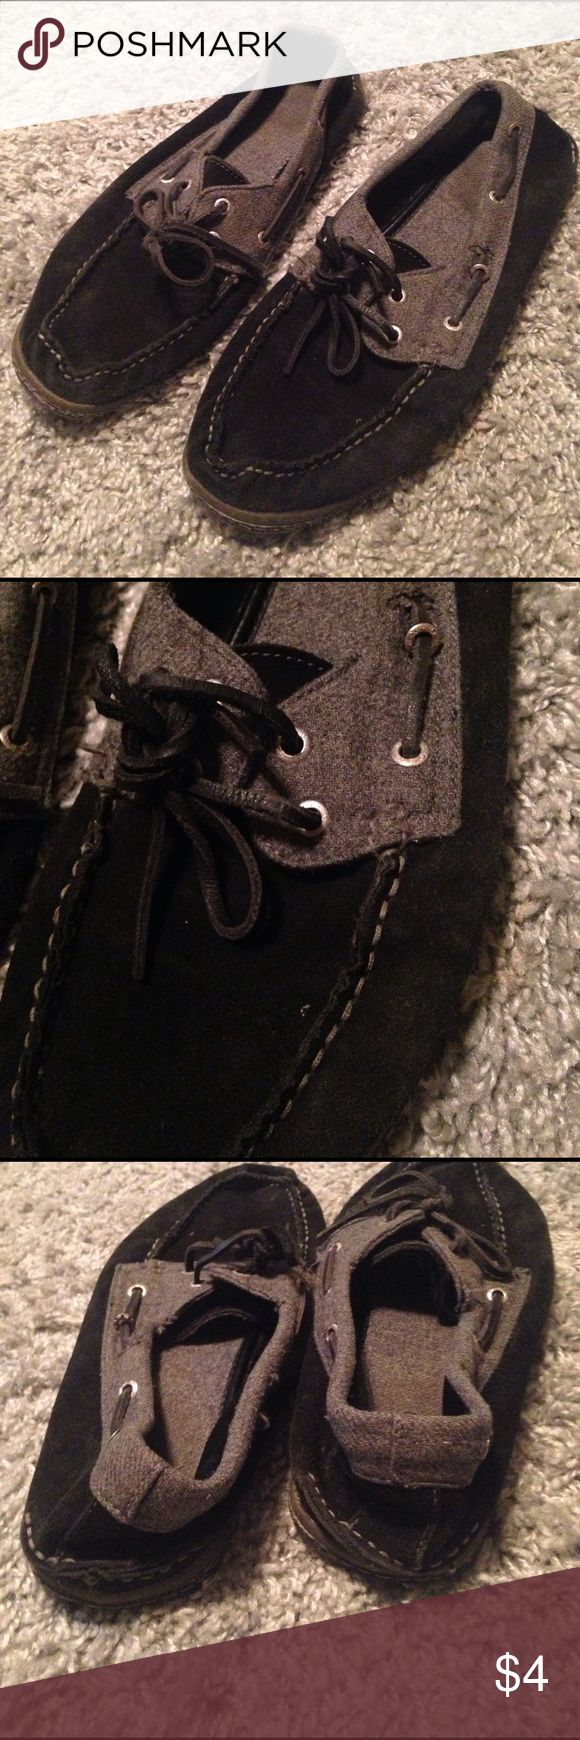 Men's Slip on Loafer Shoes ◼️ Men's Slip on Loafer Shoes. In fair condition. They are like Sperrys, but NOT Sperry brand. Black and gray suede. Size 10. Still have lights in them, but very worn, shows in the price. Check out my other listings for bundle deals! Shoes